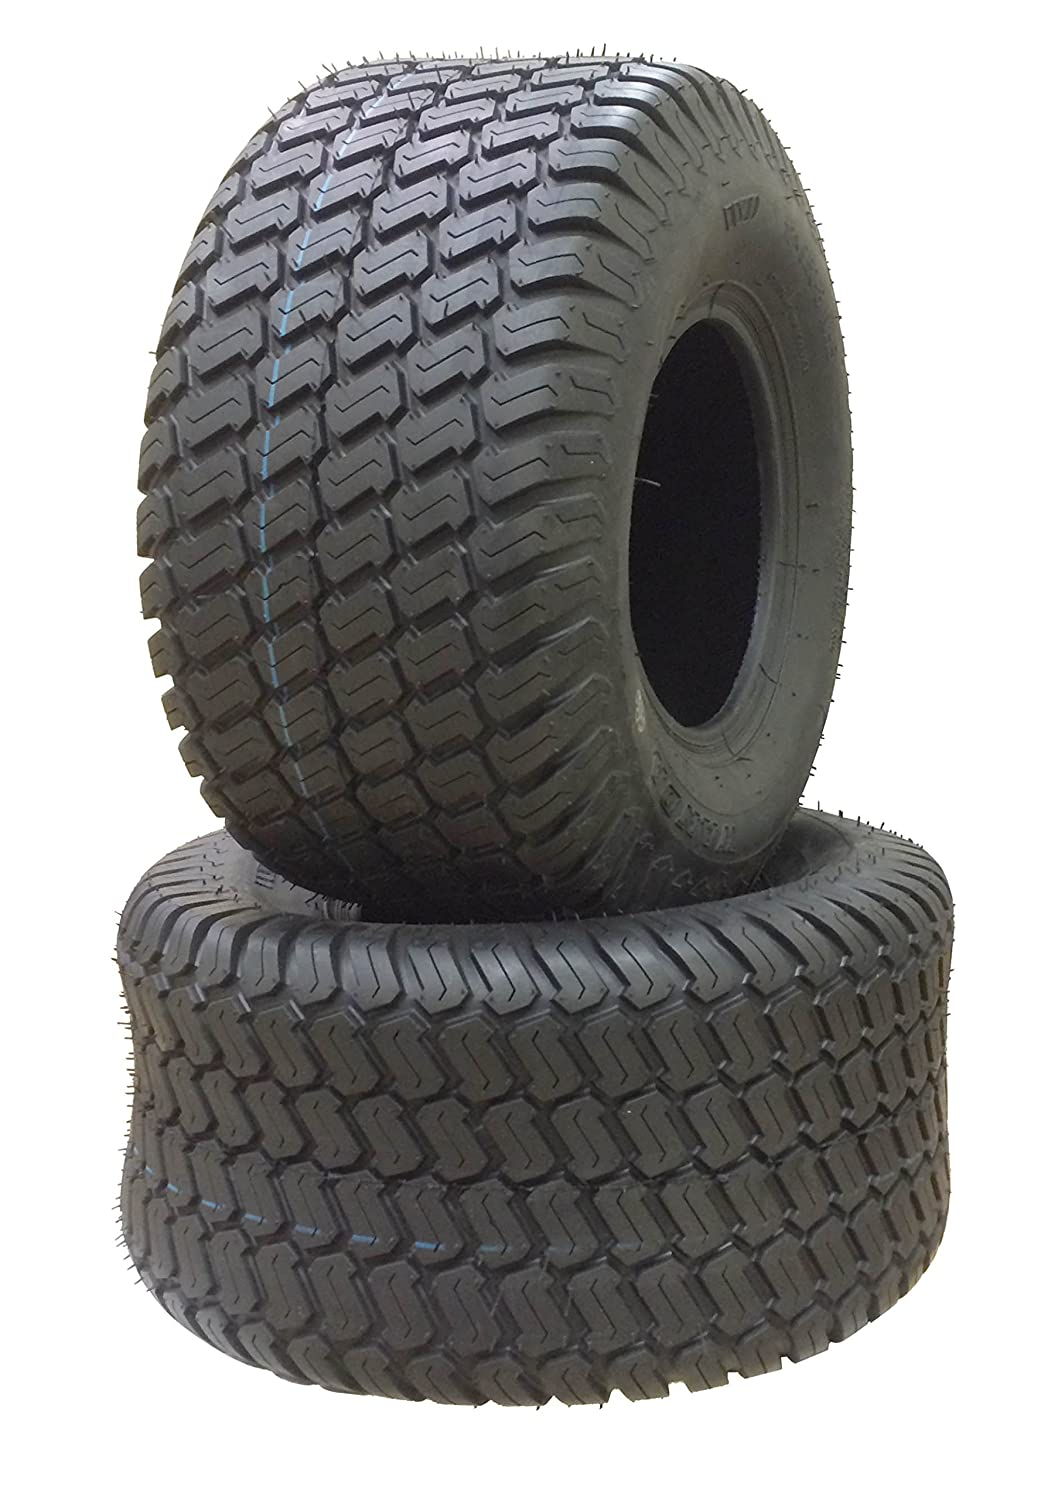 2 New 20x10-8 Lawn Mower Cart Turf Tires P332 /4PR - 13040 WANDA